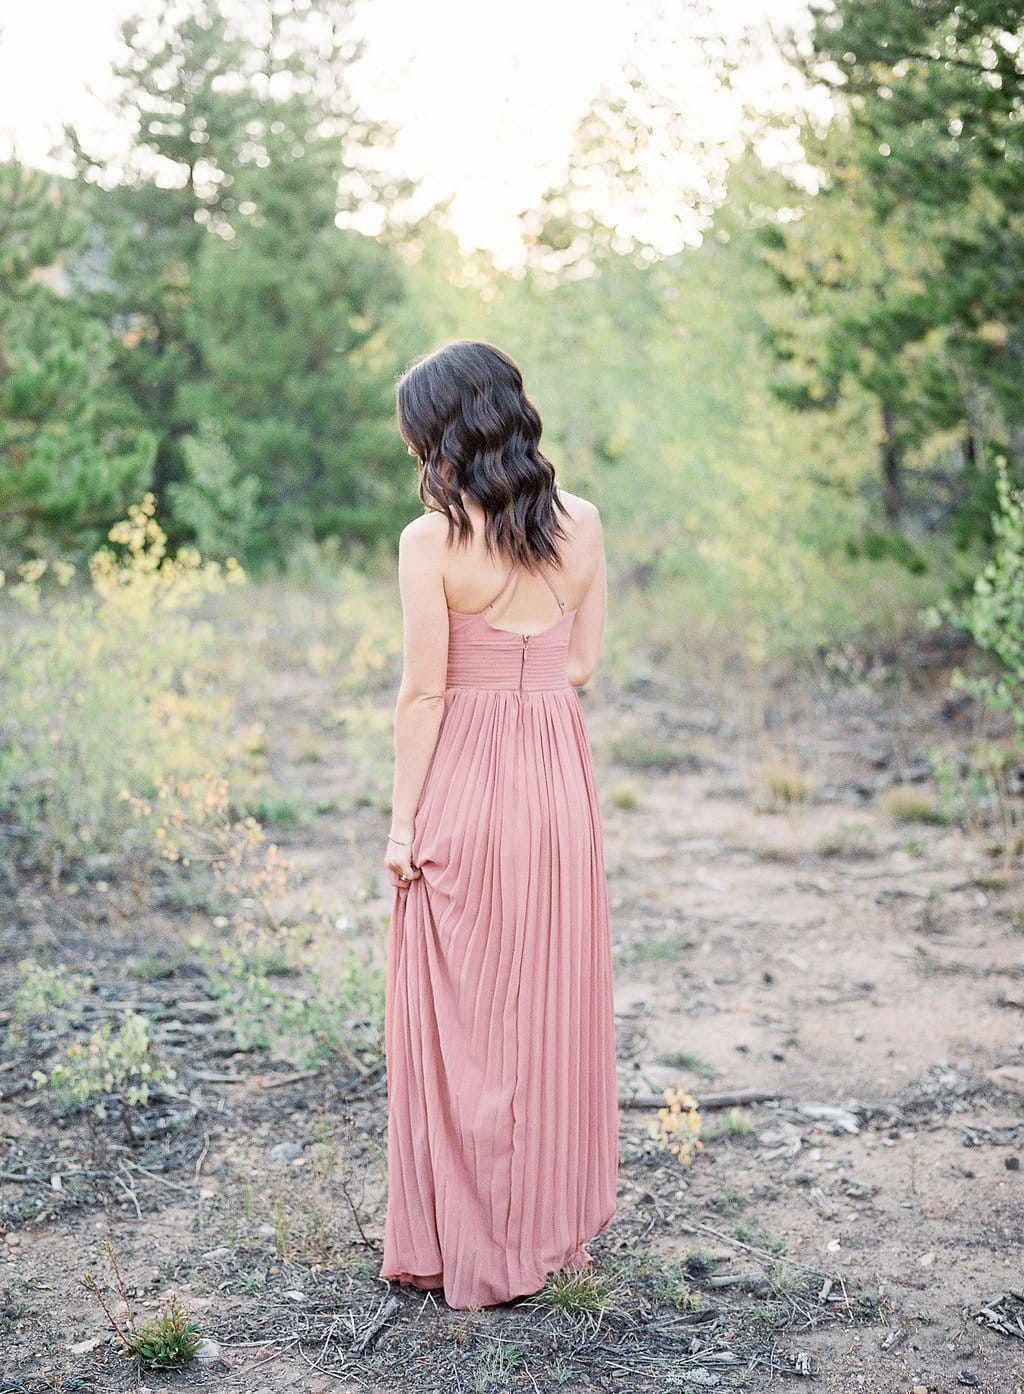 Bride wearing a pink dress and standing in Colorado dessert